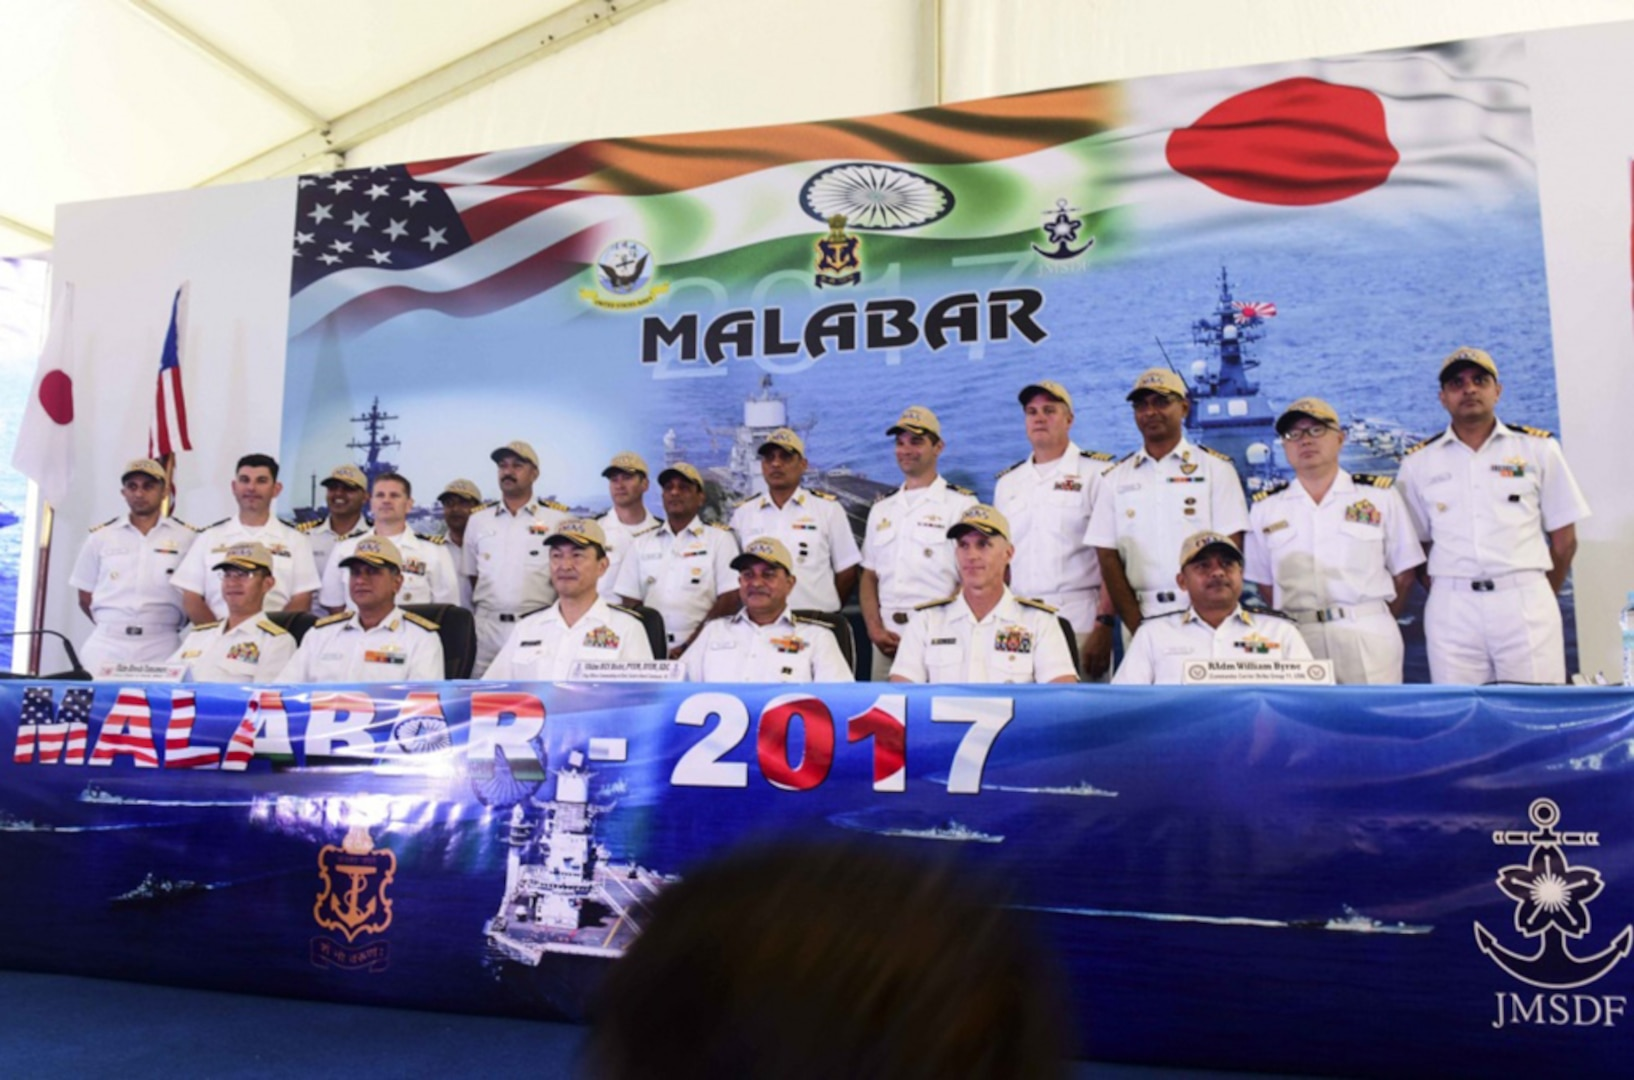 Leaders from U.S., Indian, and Japanese maritime forces pose for a photo after a press conference aboard the INS Jalashwa (LPD 41) as part of the opening ceremonies of exercise Malabar 2017. Malabar 2017 is the latest in a continuing series of exercises between the Indian Navy, Japan Maritime Self Defense Force and the U.S. Navy that has grown in scope and complexity over the years to address the variety of shared threats to maritime security in the Indo-Asia Pacific.